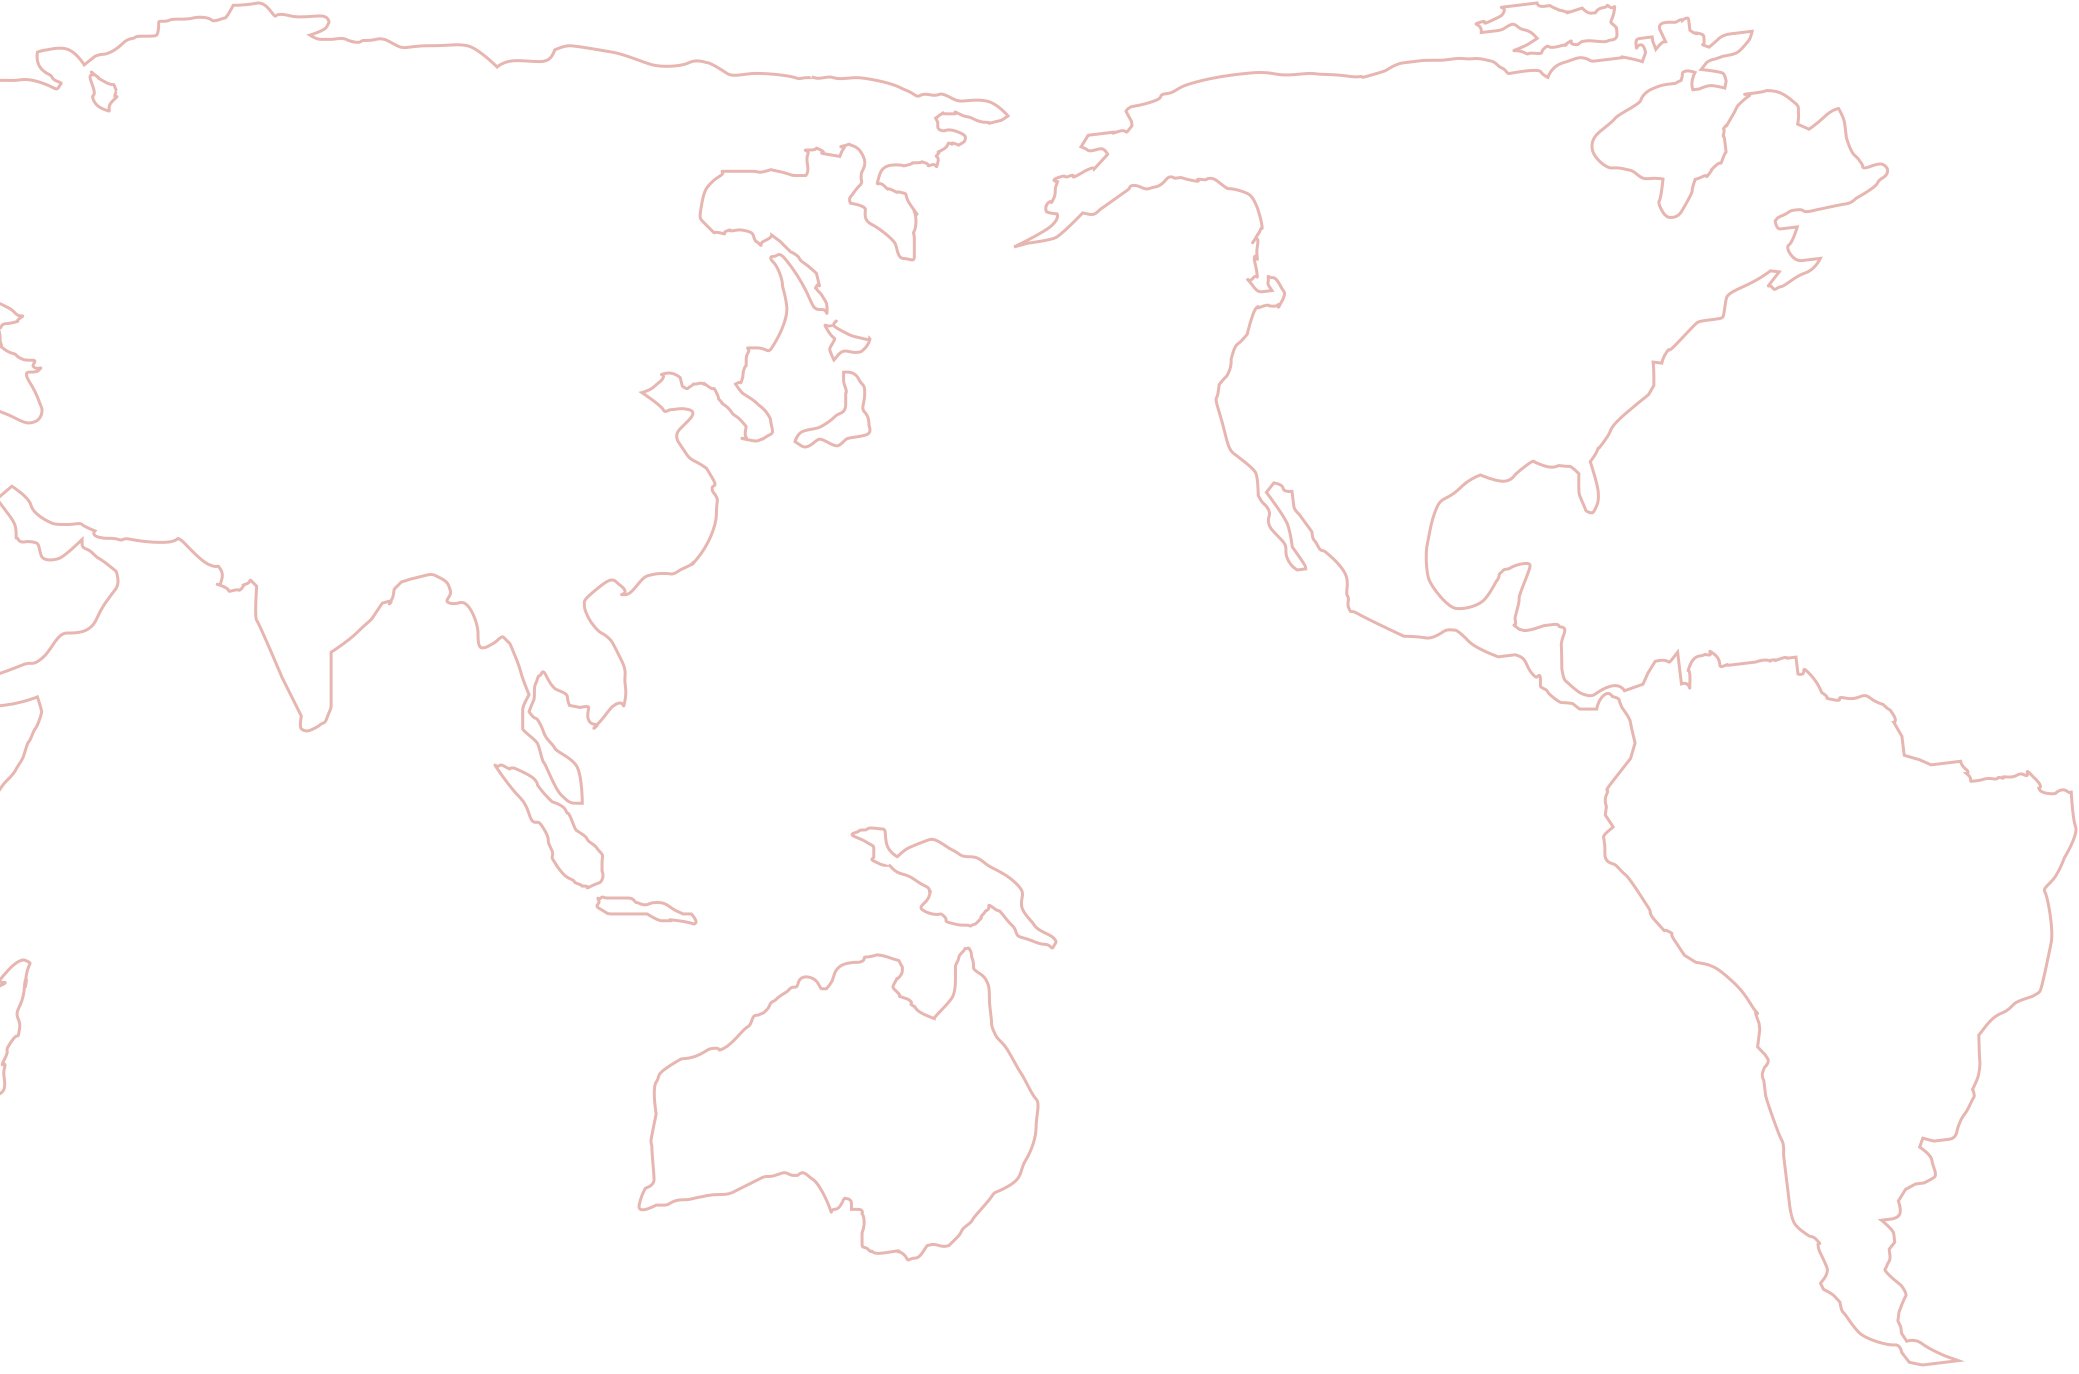 Outline Map of the Americas, Asia, and Oceania